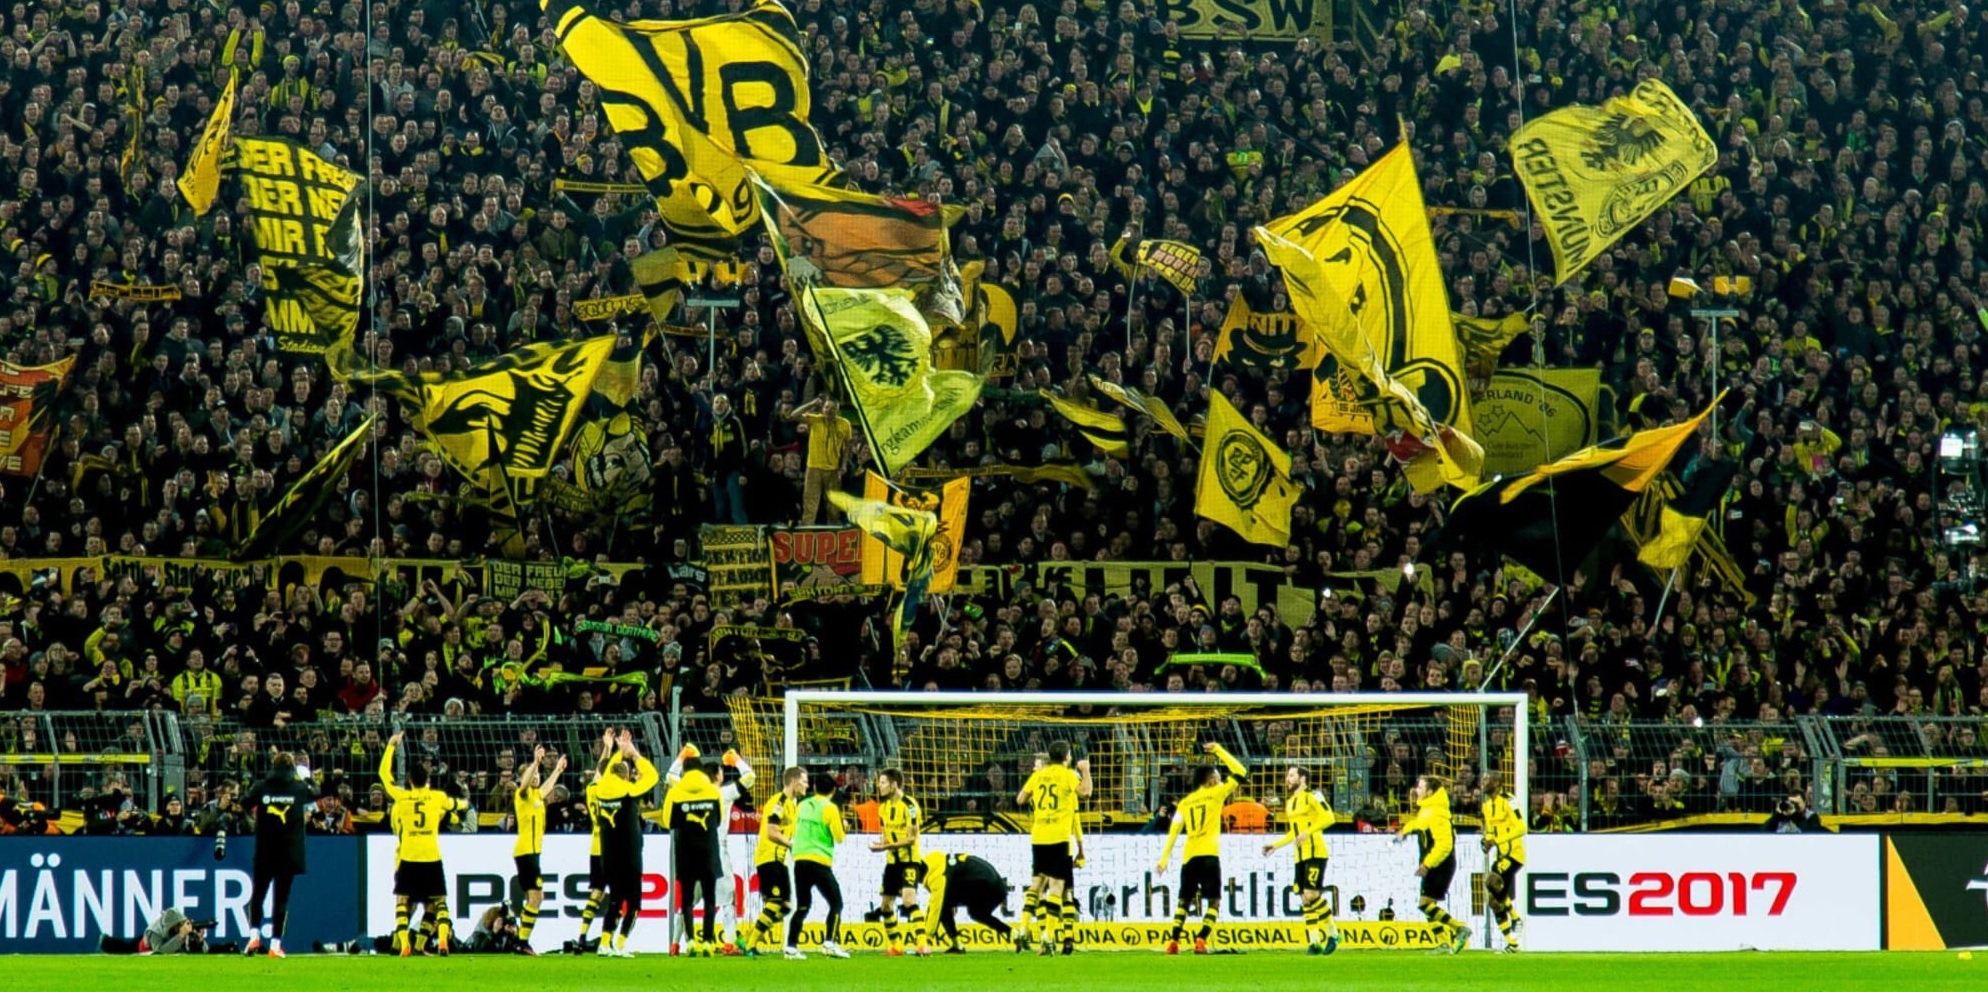 Clubs could consider changing ownership models to German 50+1 system, suggests Fjortoft